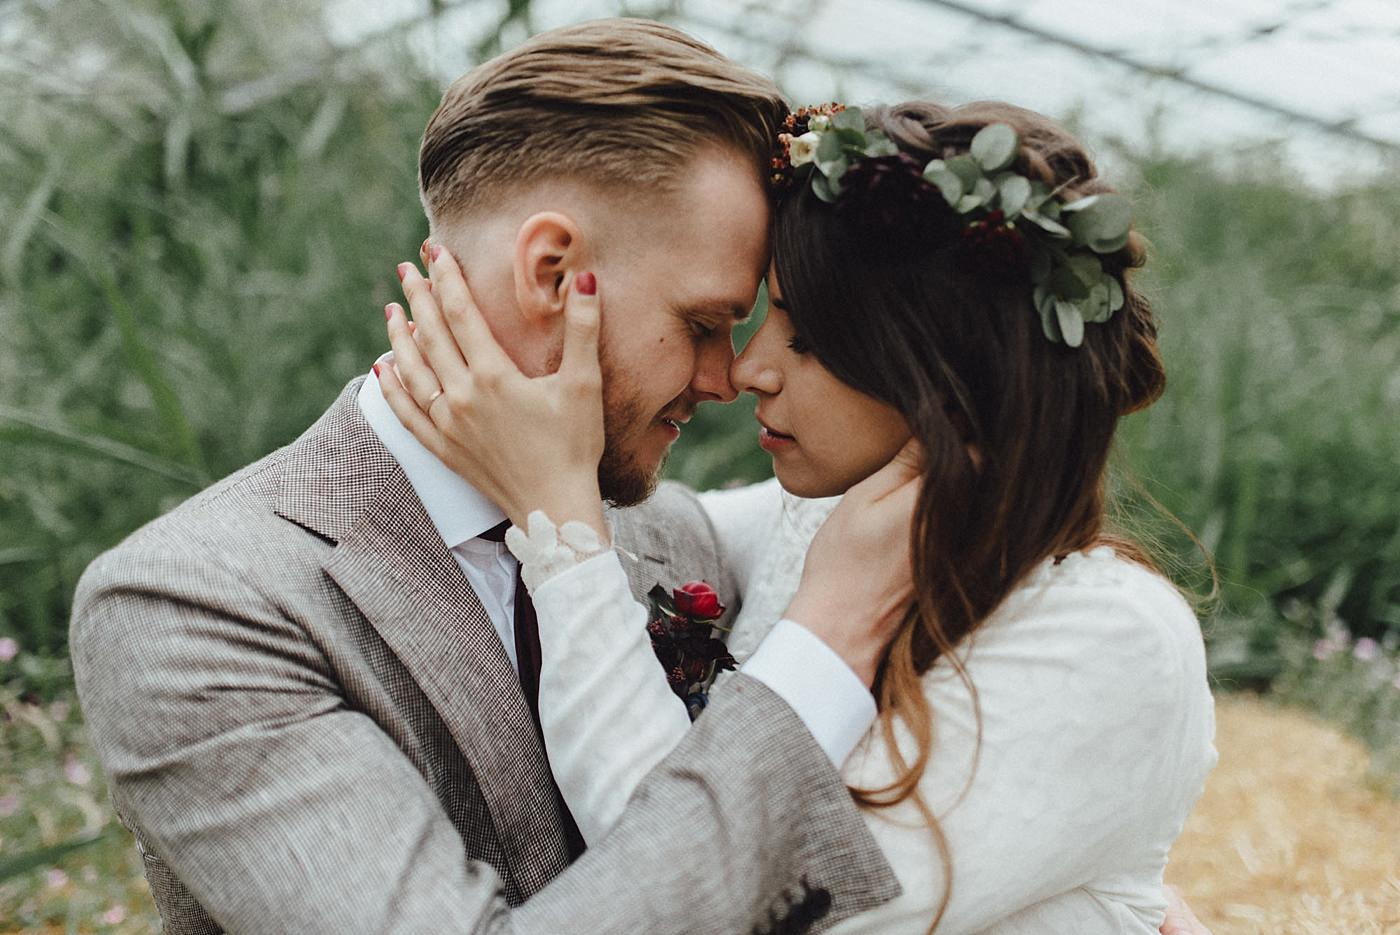 urban-elopement-wedding-184 Merve & Nils emotionales Elopement - Wedding Wesel & Schottlandurban elopement wedding 184 1